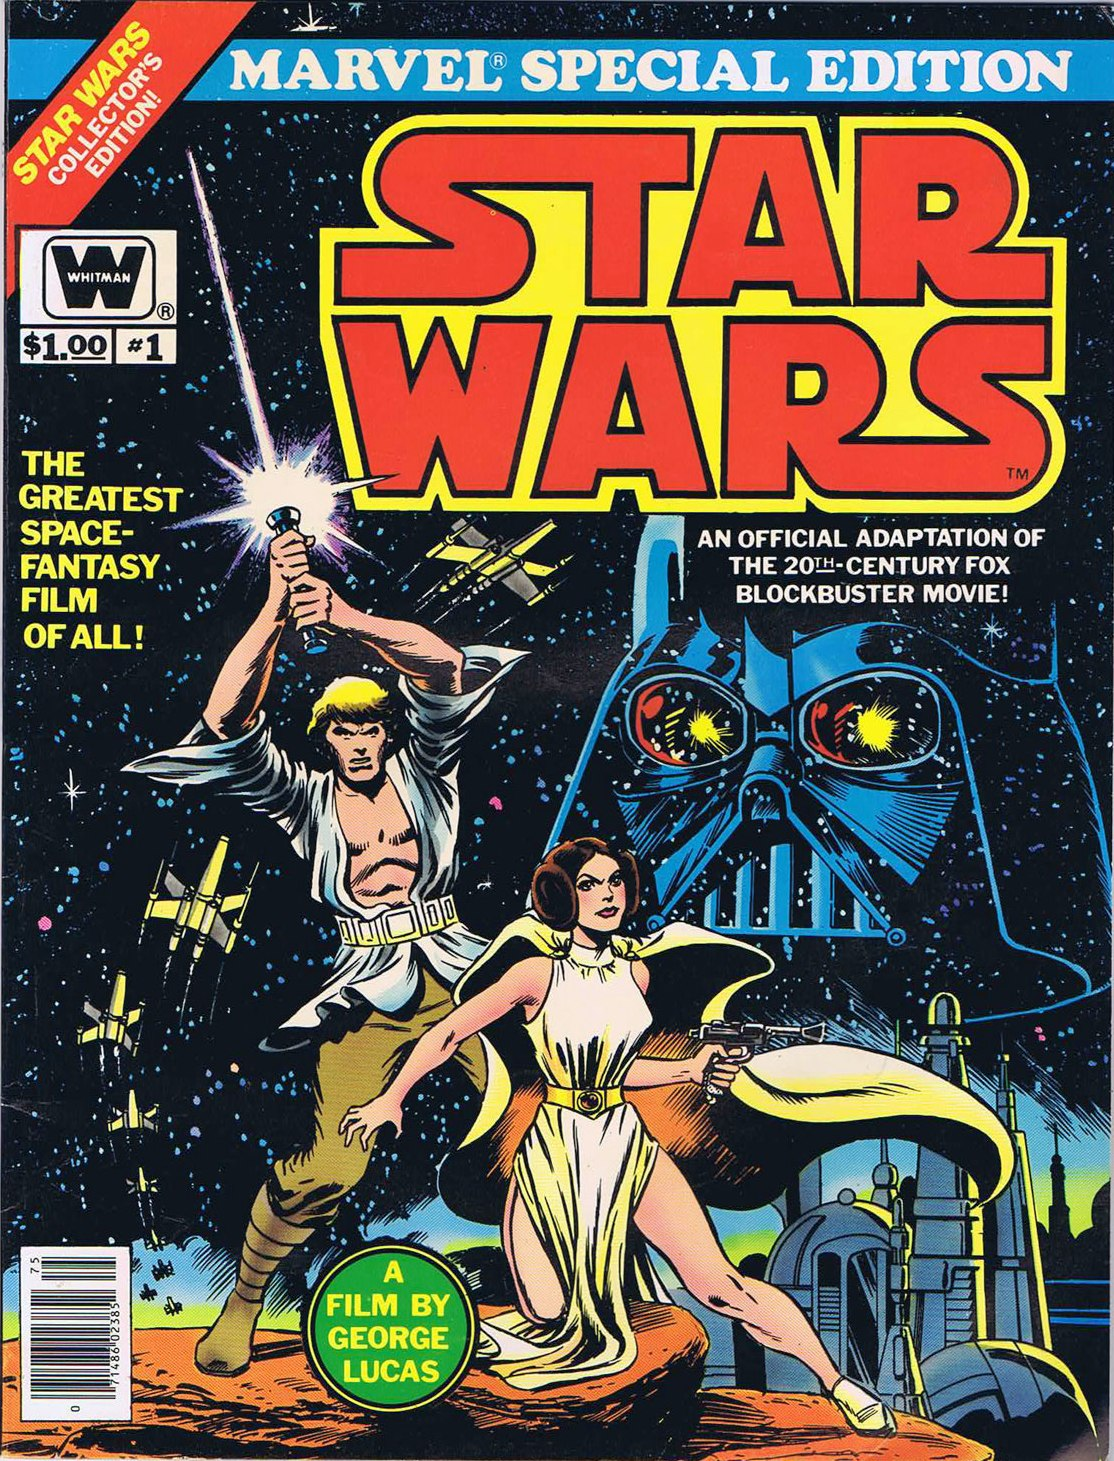 Marvel Special Edition Featuring Star Wars Vol 1 1 Whitman.jpg